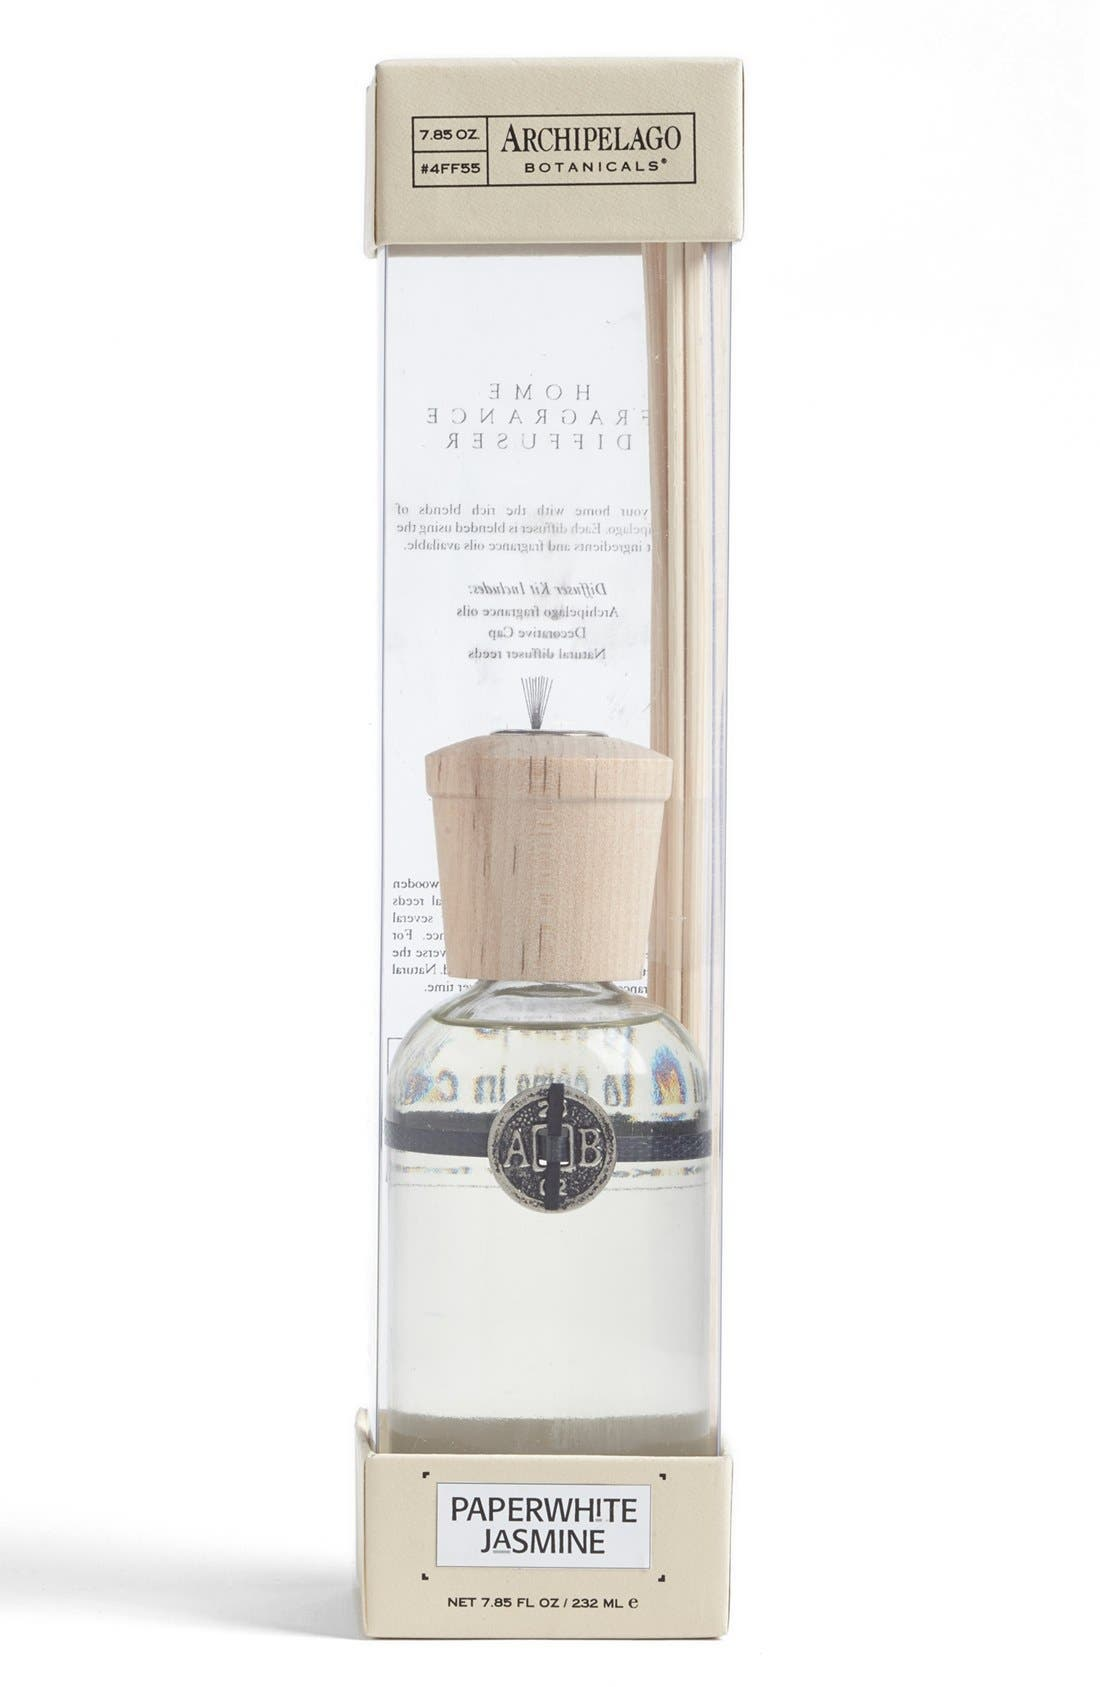 Alternate Image 1 Selected - Archipelago Botanicals 'Paperwhite Jasmine' Fragrance Diffuser (Special Purchase)